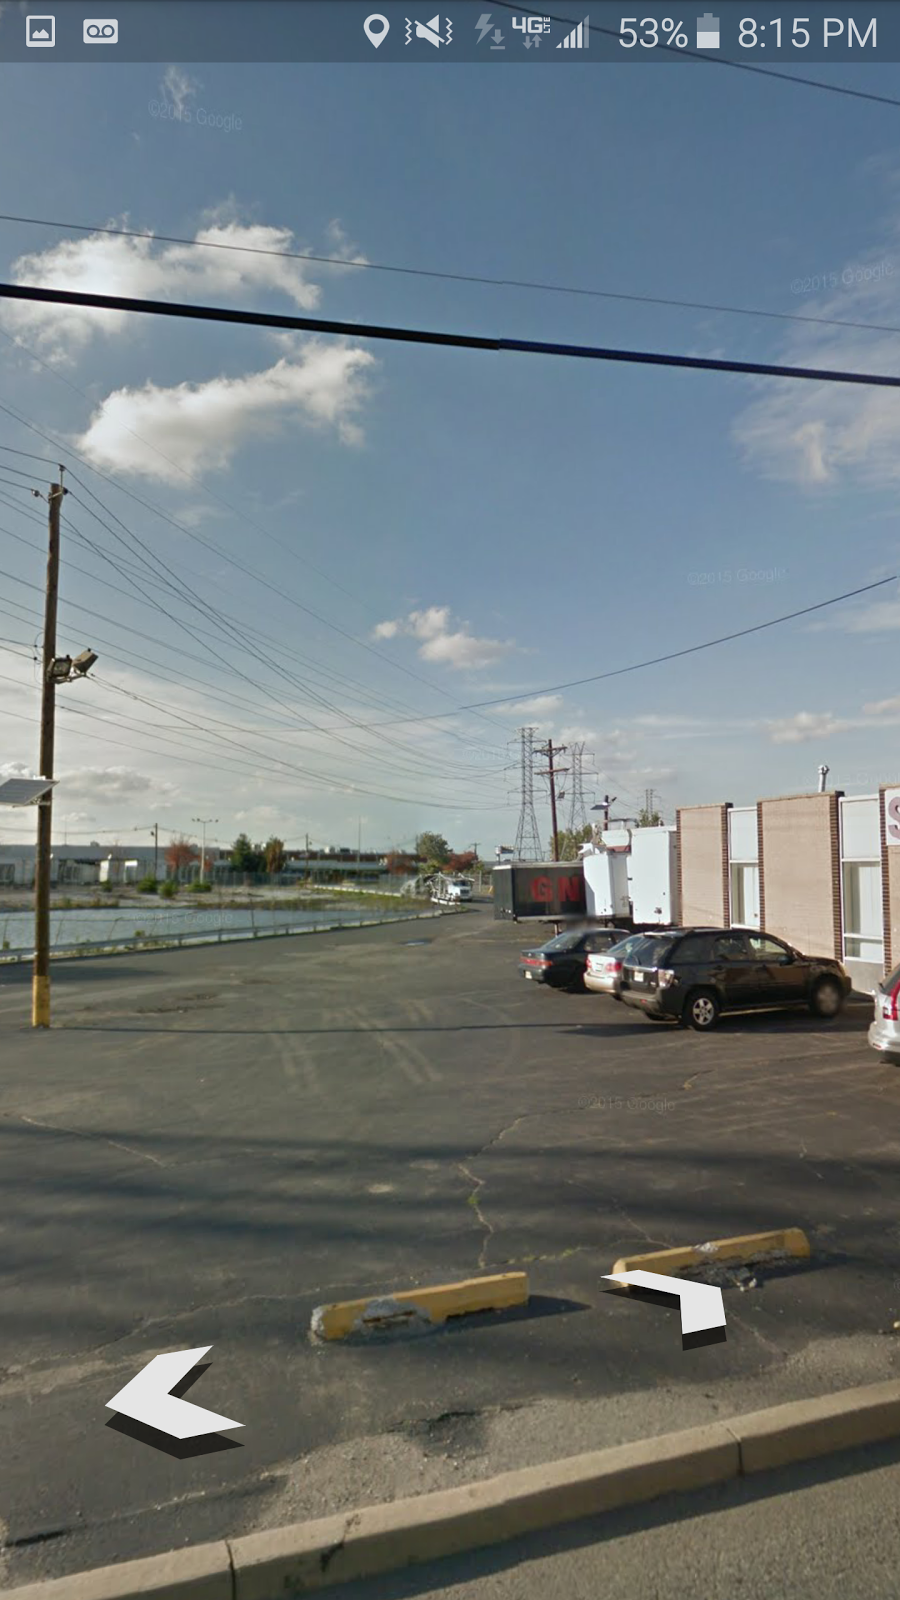 Bram Auto Group - storage  | Photo 6 of 7 | Address: 7500 West Side Ave, North Bergen, NJ 07047, USA | Phone: (201) 255-1200